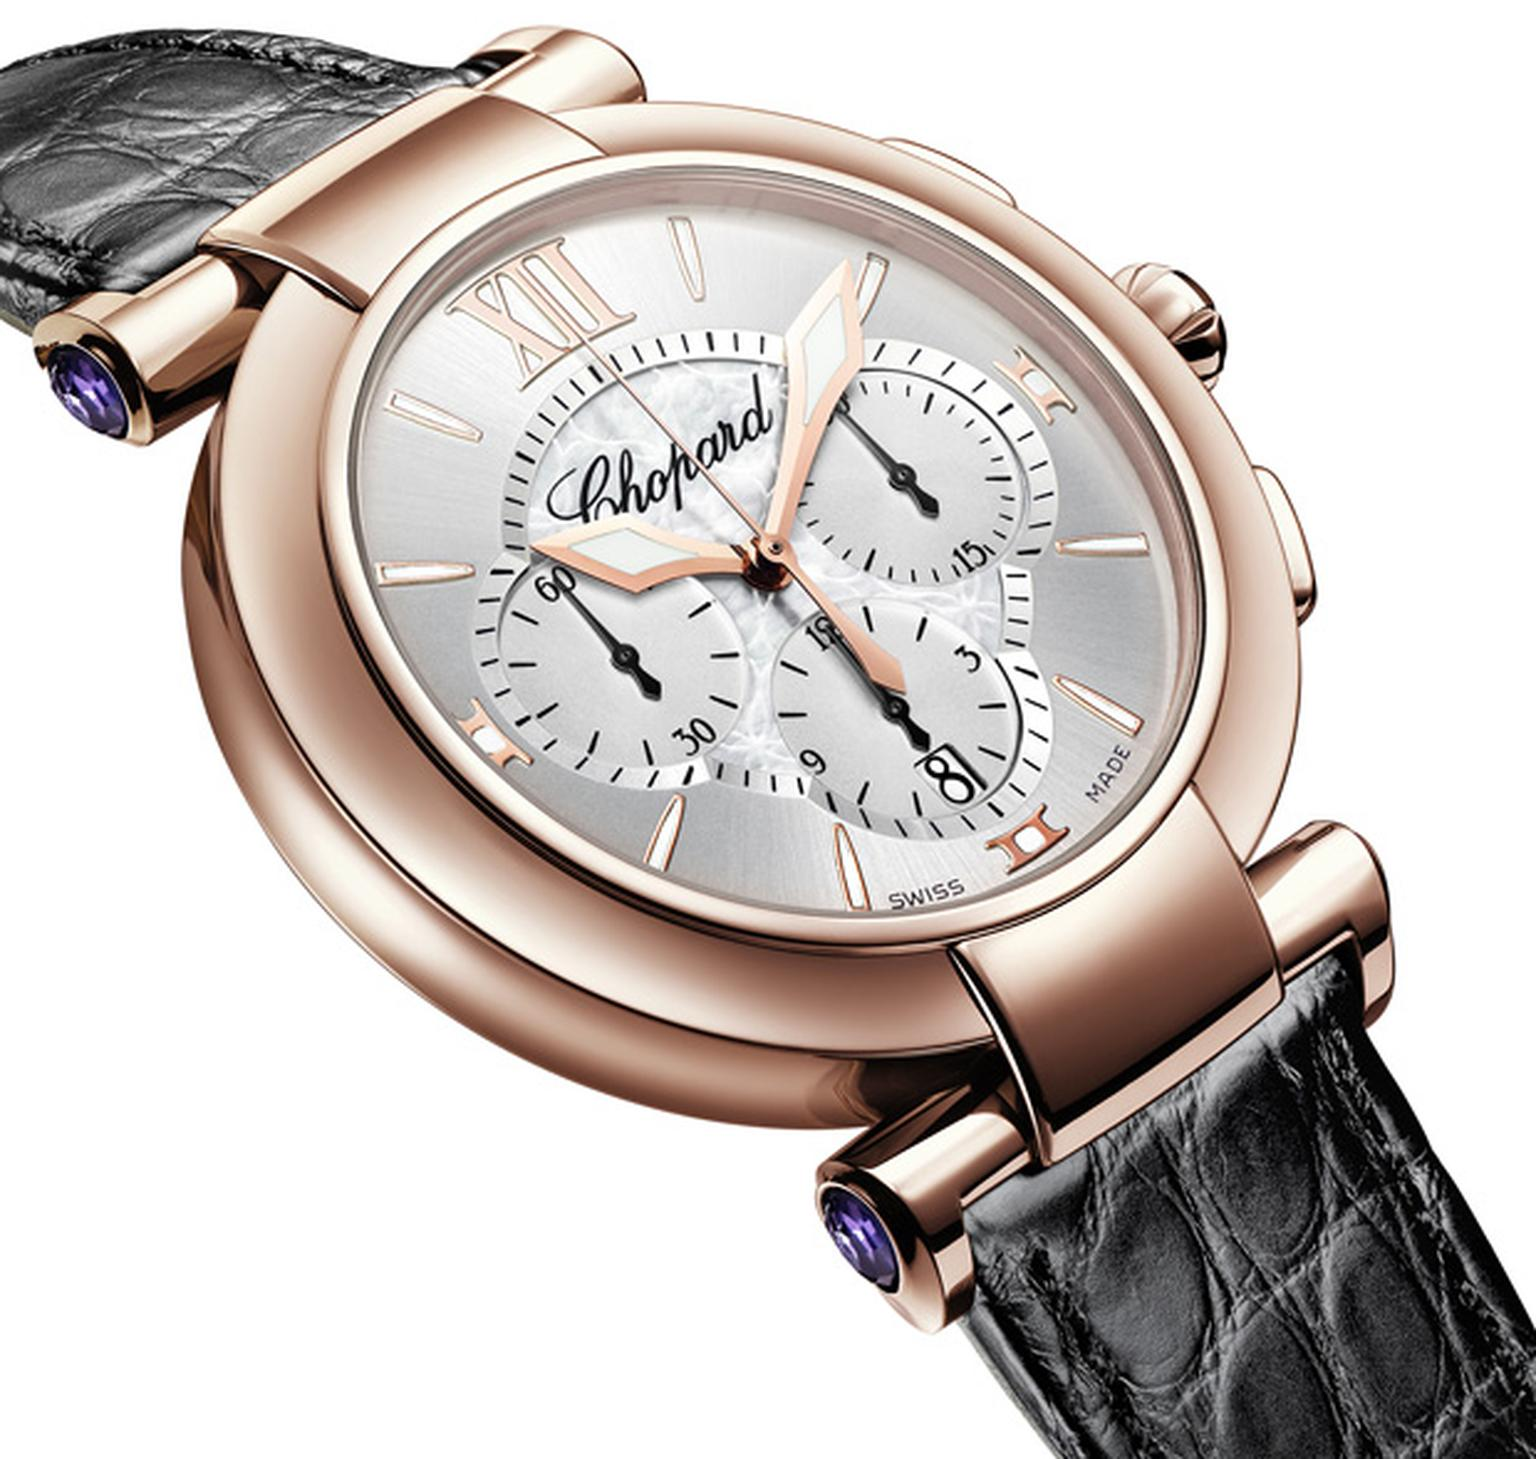 Chopard Imperiale Rose gold automatic chronograph